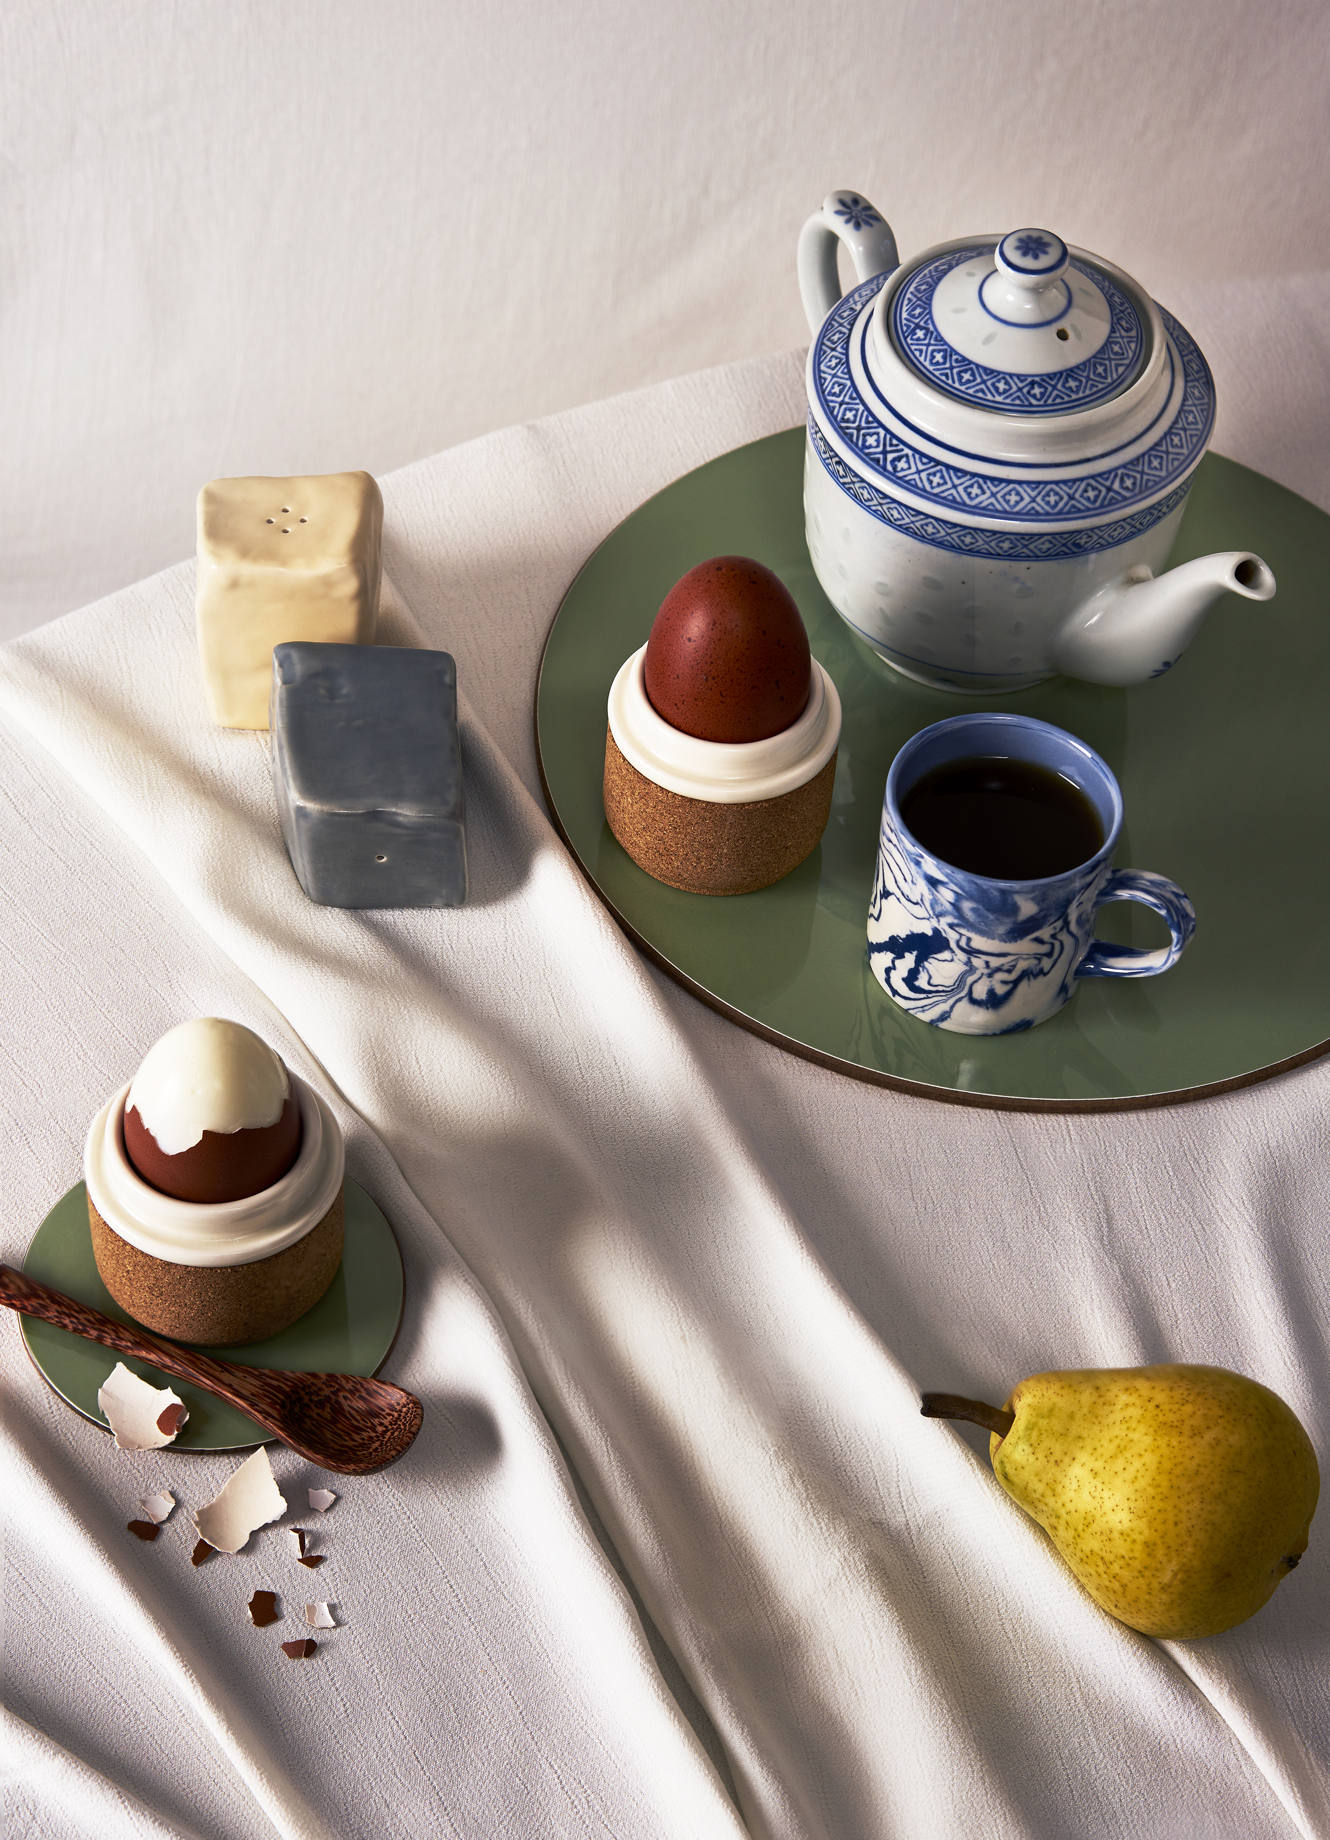 craft of use, art of craftmanship, home decor, still life editorial, Melissa Dora, Nom Living, , Maik London, Silo Studio, Aerende, Lusophile, Oxfam, Kay Minchington Keramik, Charlie Goodge, Luxiders Magazine, Alice Wilby, nachhaltige Haushaltswaren, Handwerk